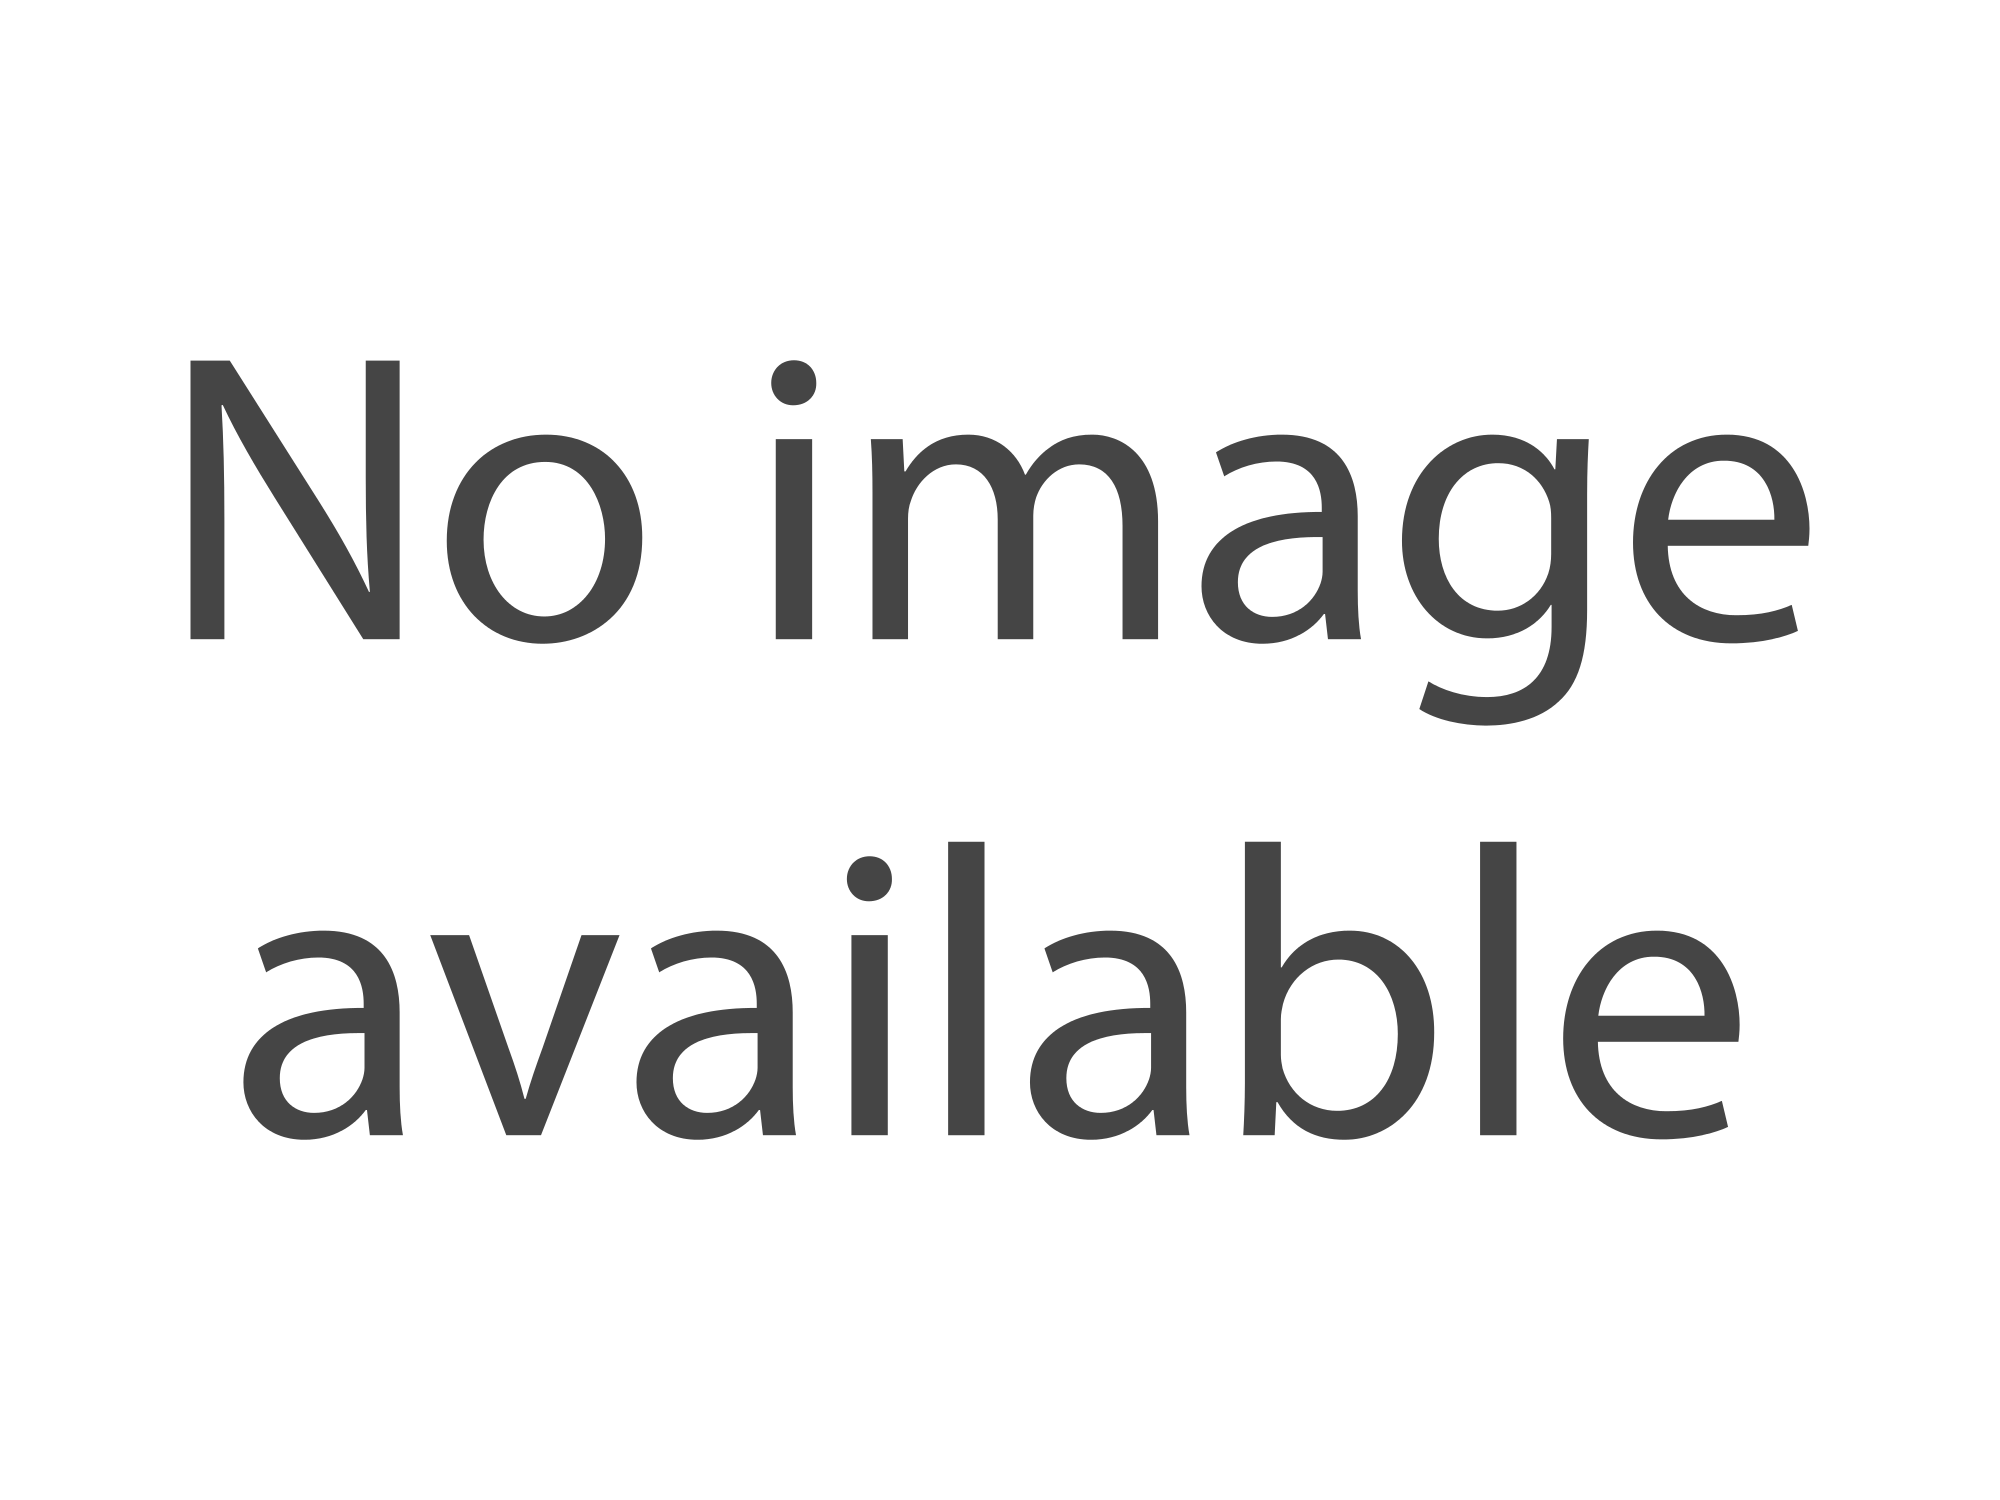 File x svg wikimedia. No image available png png free